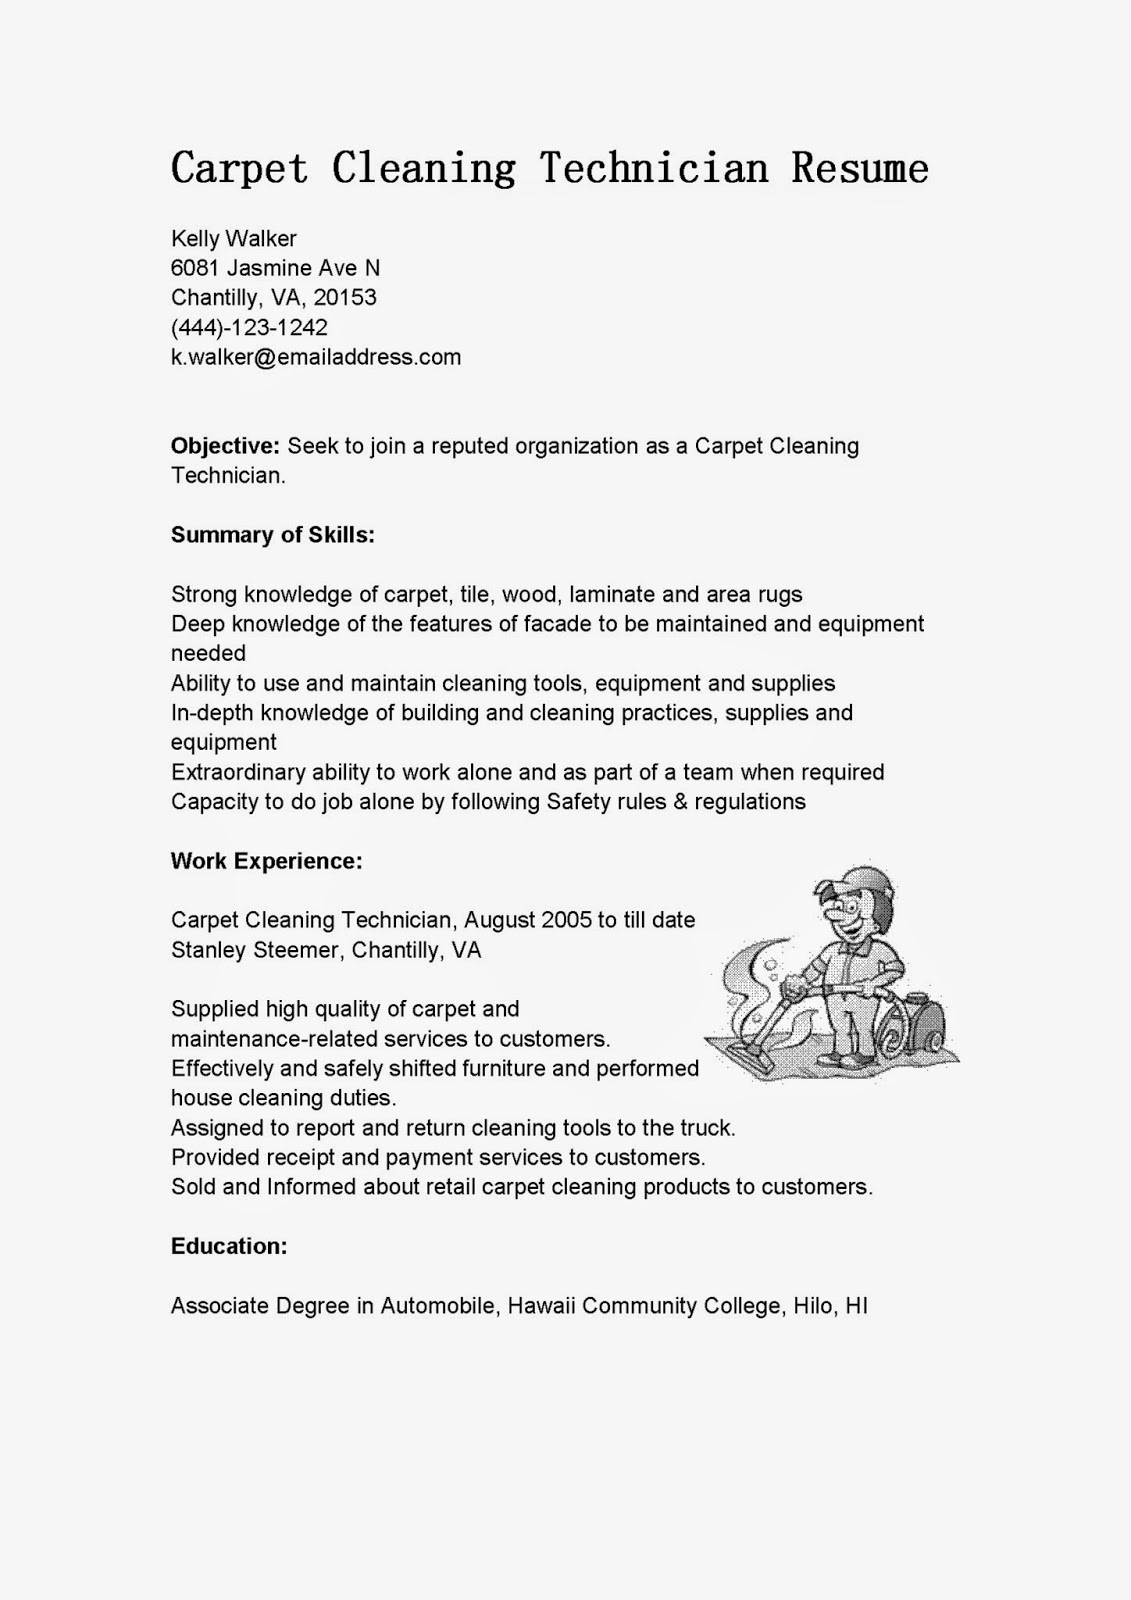 condition monitoring technician resume cover letter gis job automotive technician resume sample template plant services